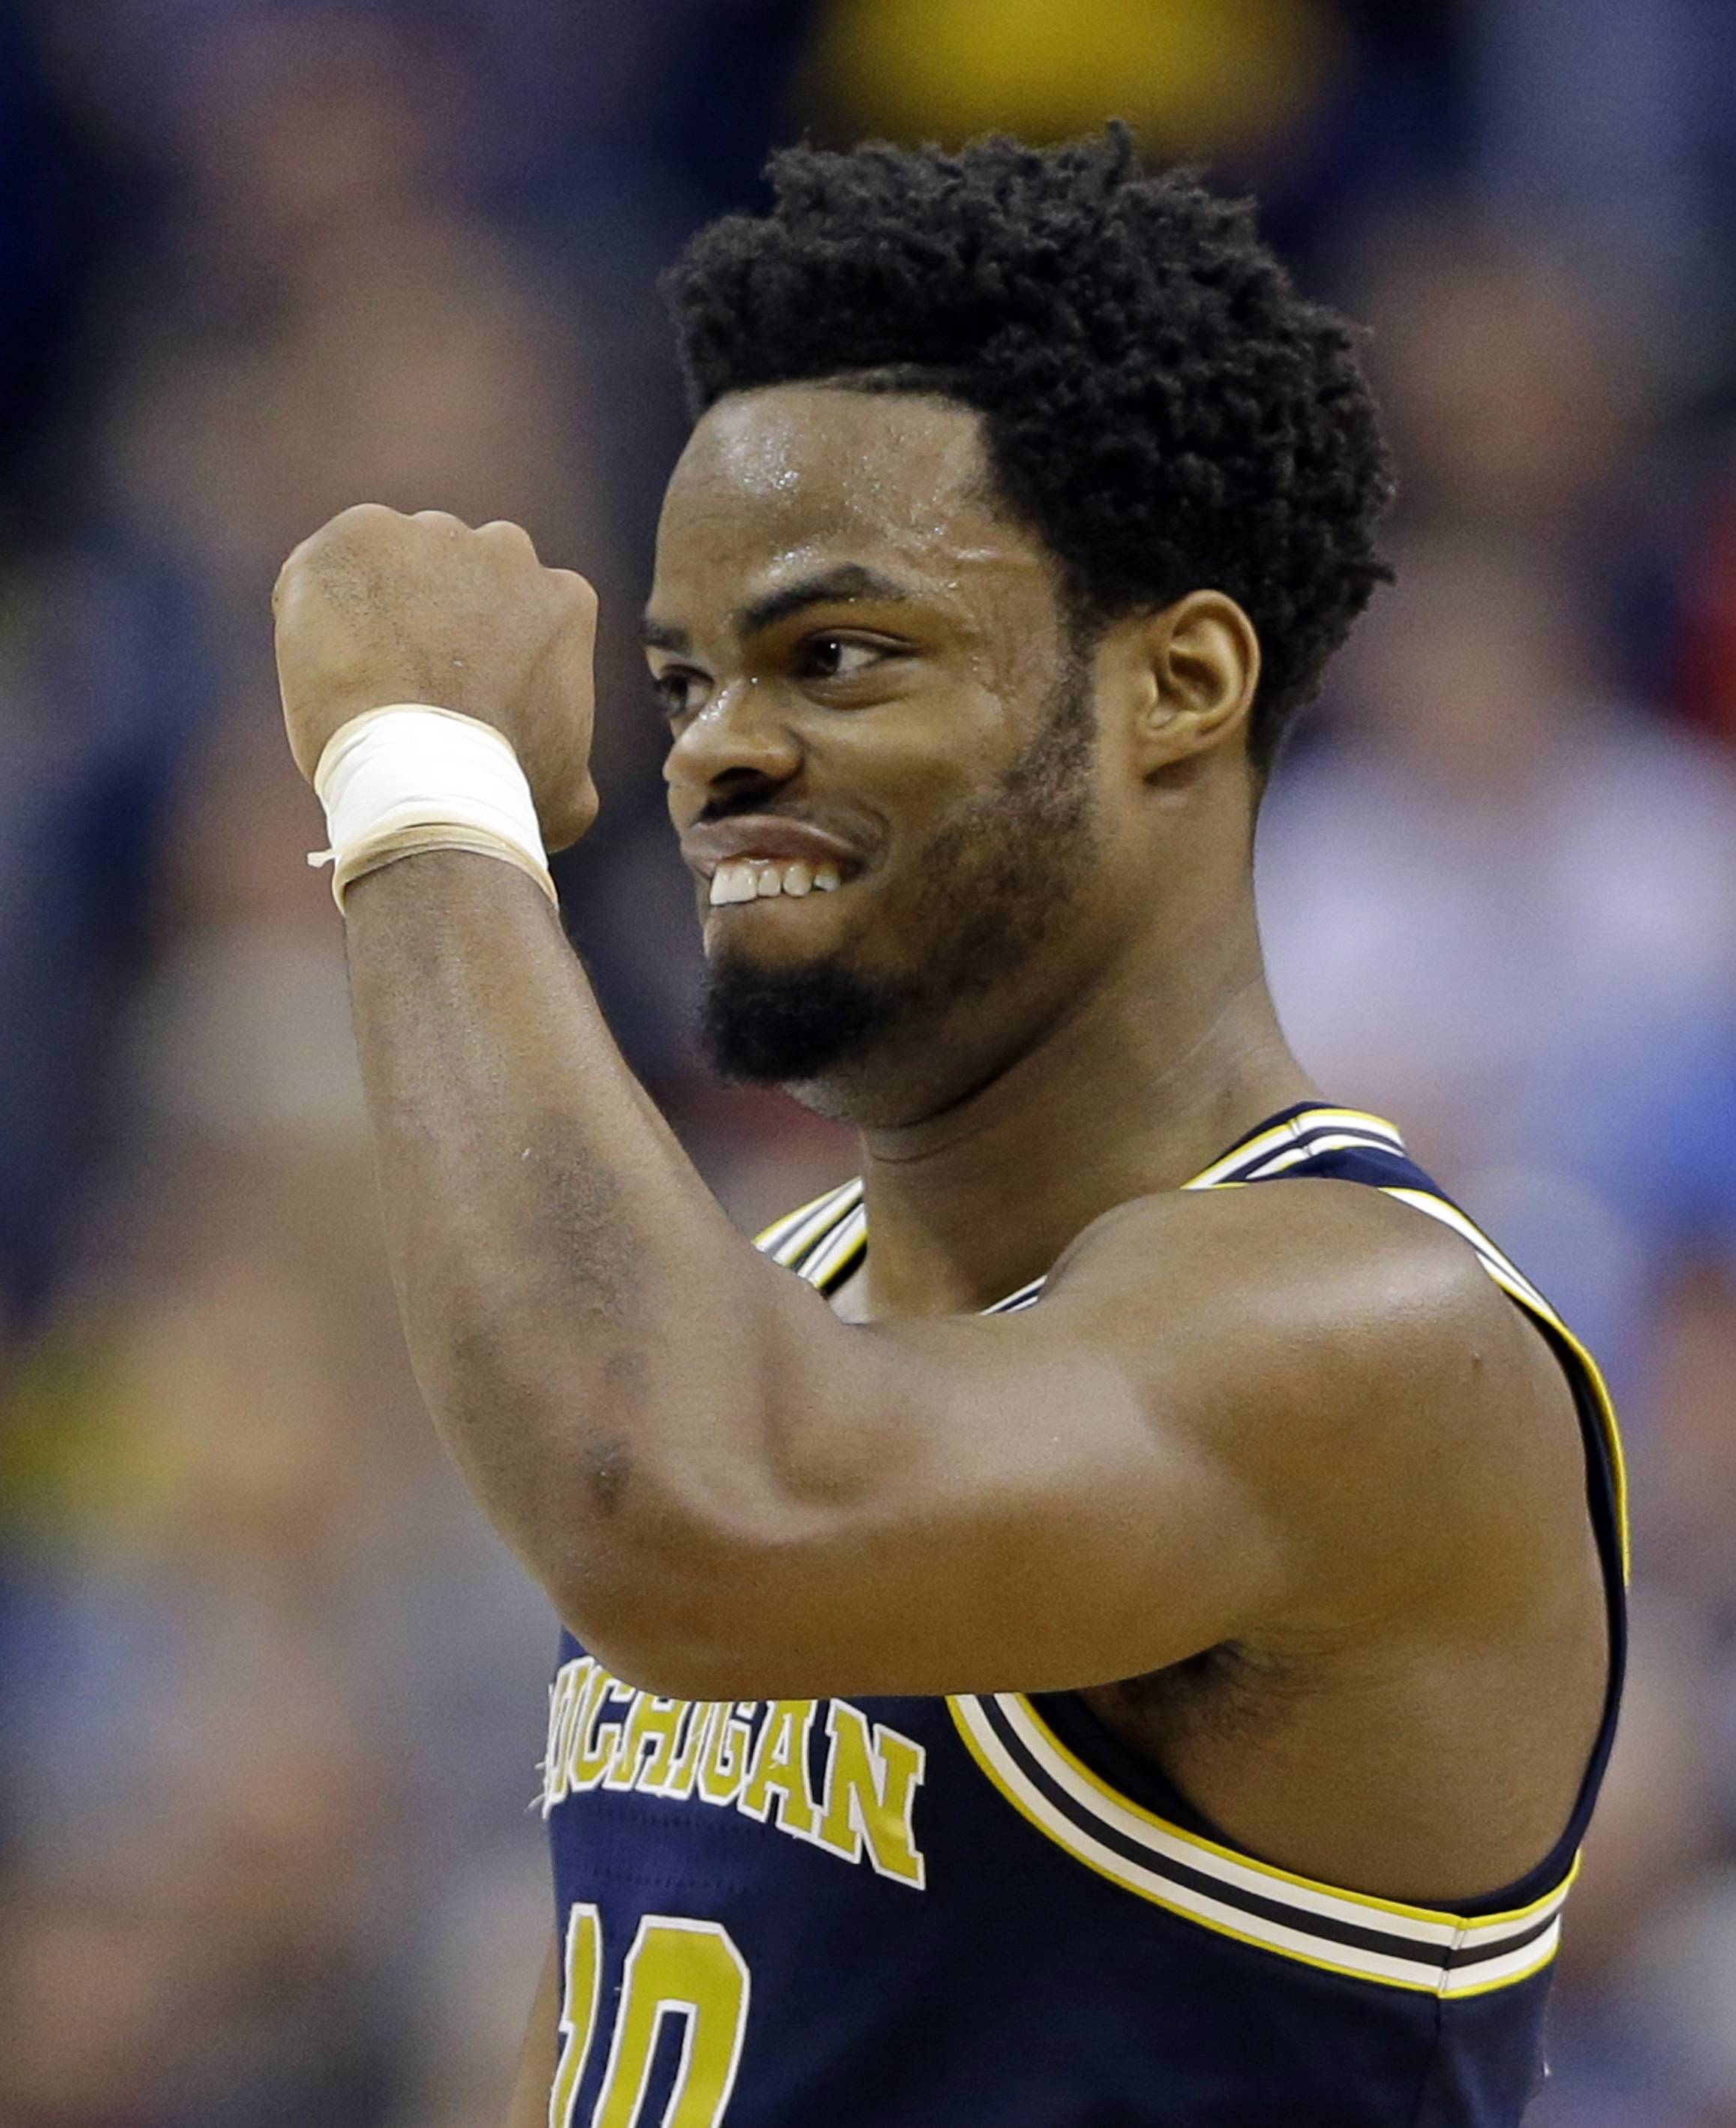 Derrick Walton Jr., who played for Michigan in 2017 and the Miami Heat last year, was signed Tuesday by the Bulls.